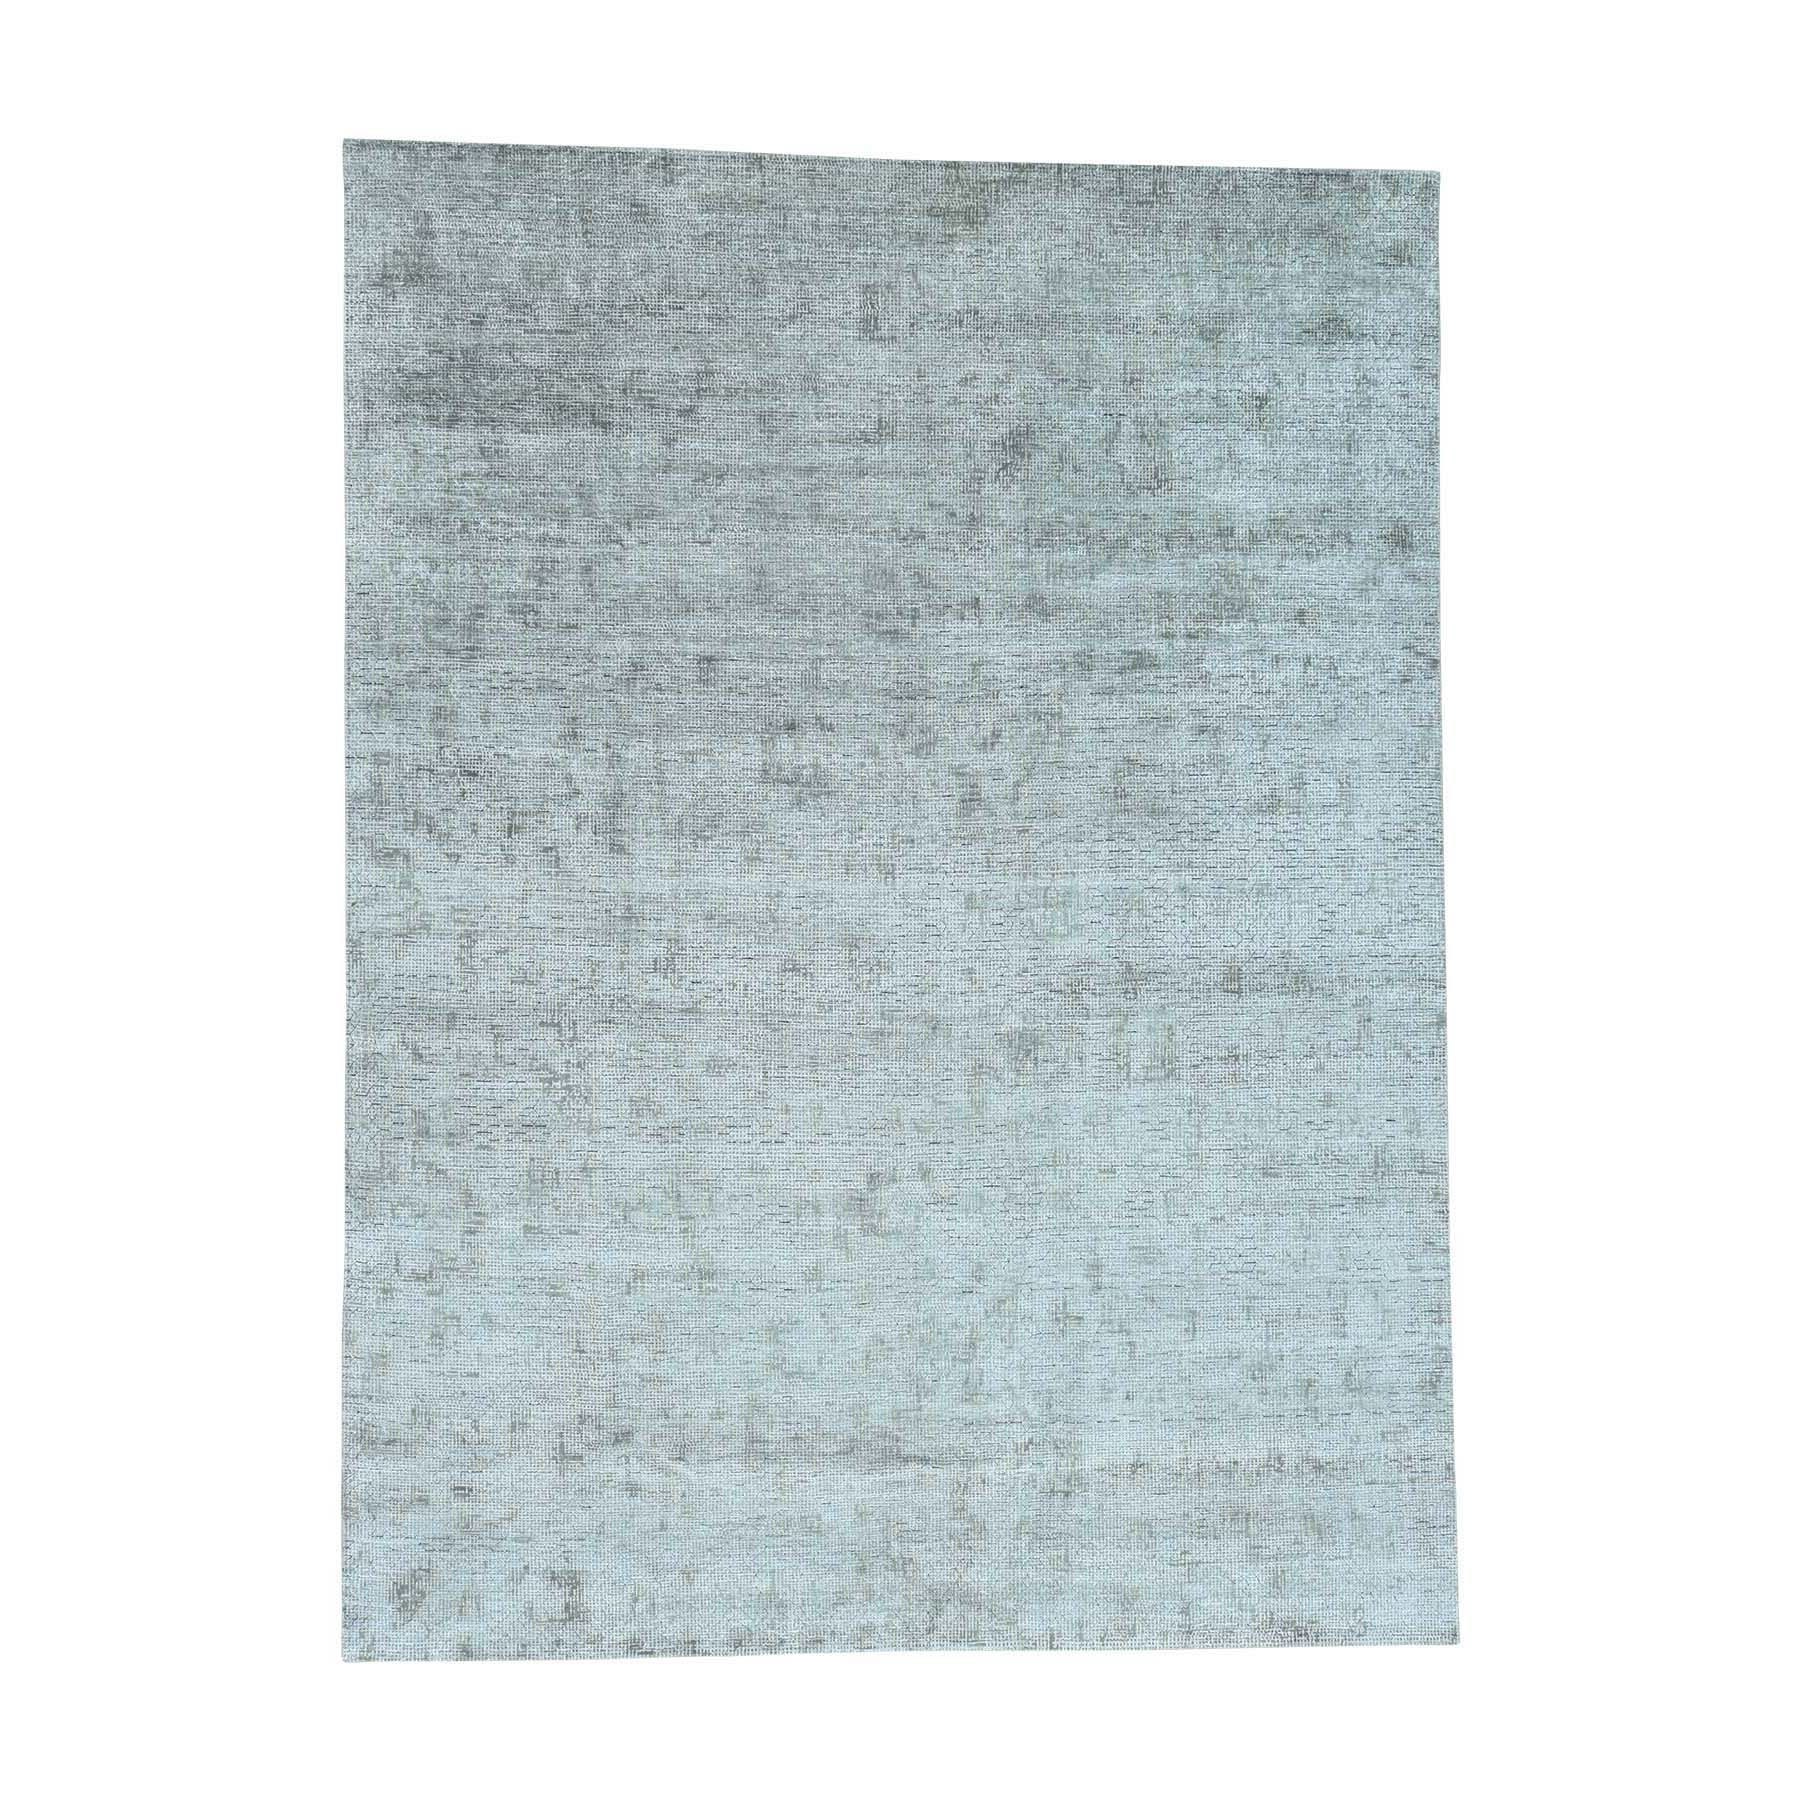 9'X12' Hand-Knotted Roman Mosaic Design Pure Silk With Textured Wool Rug moacdbdb